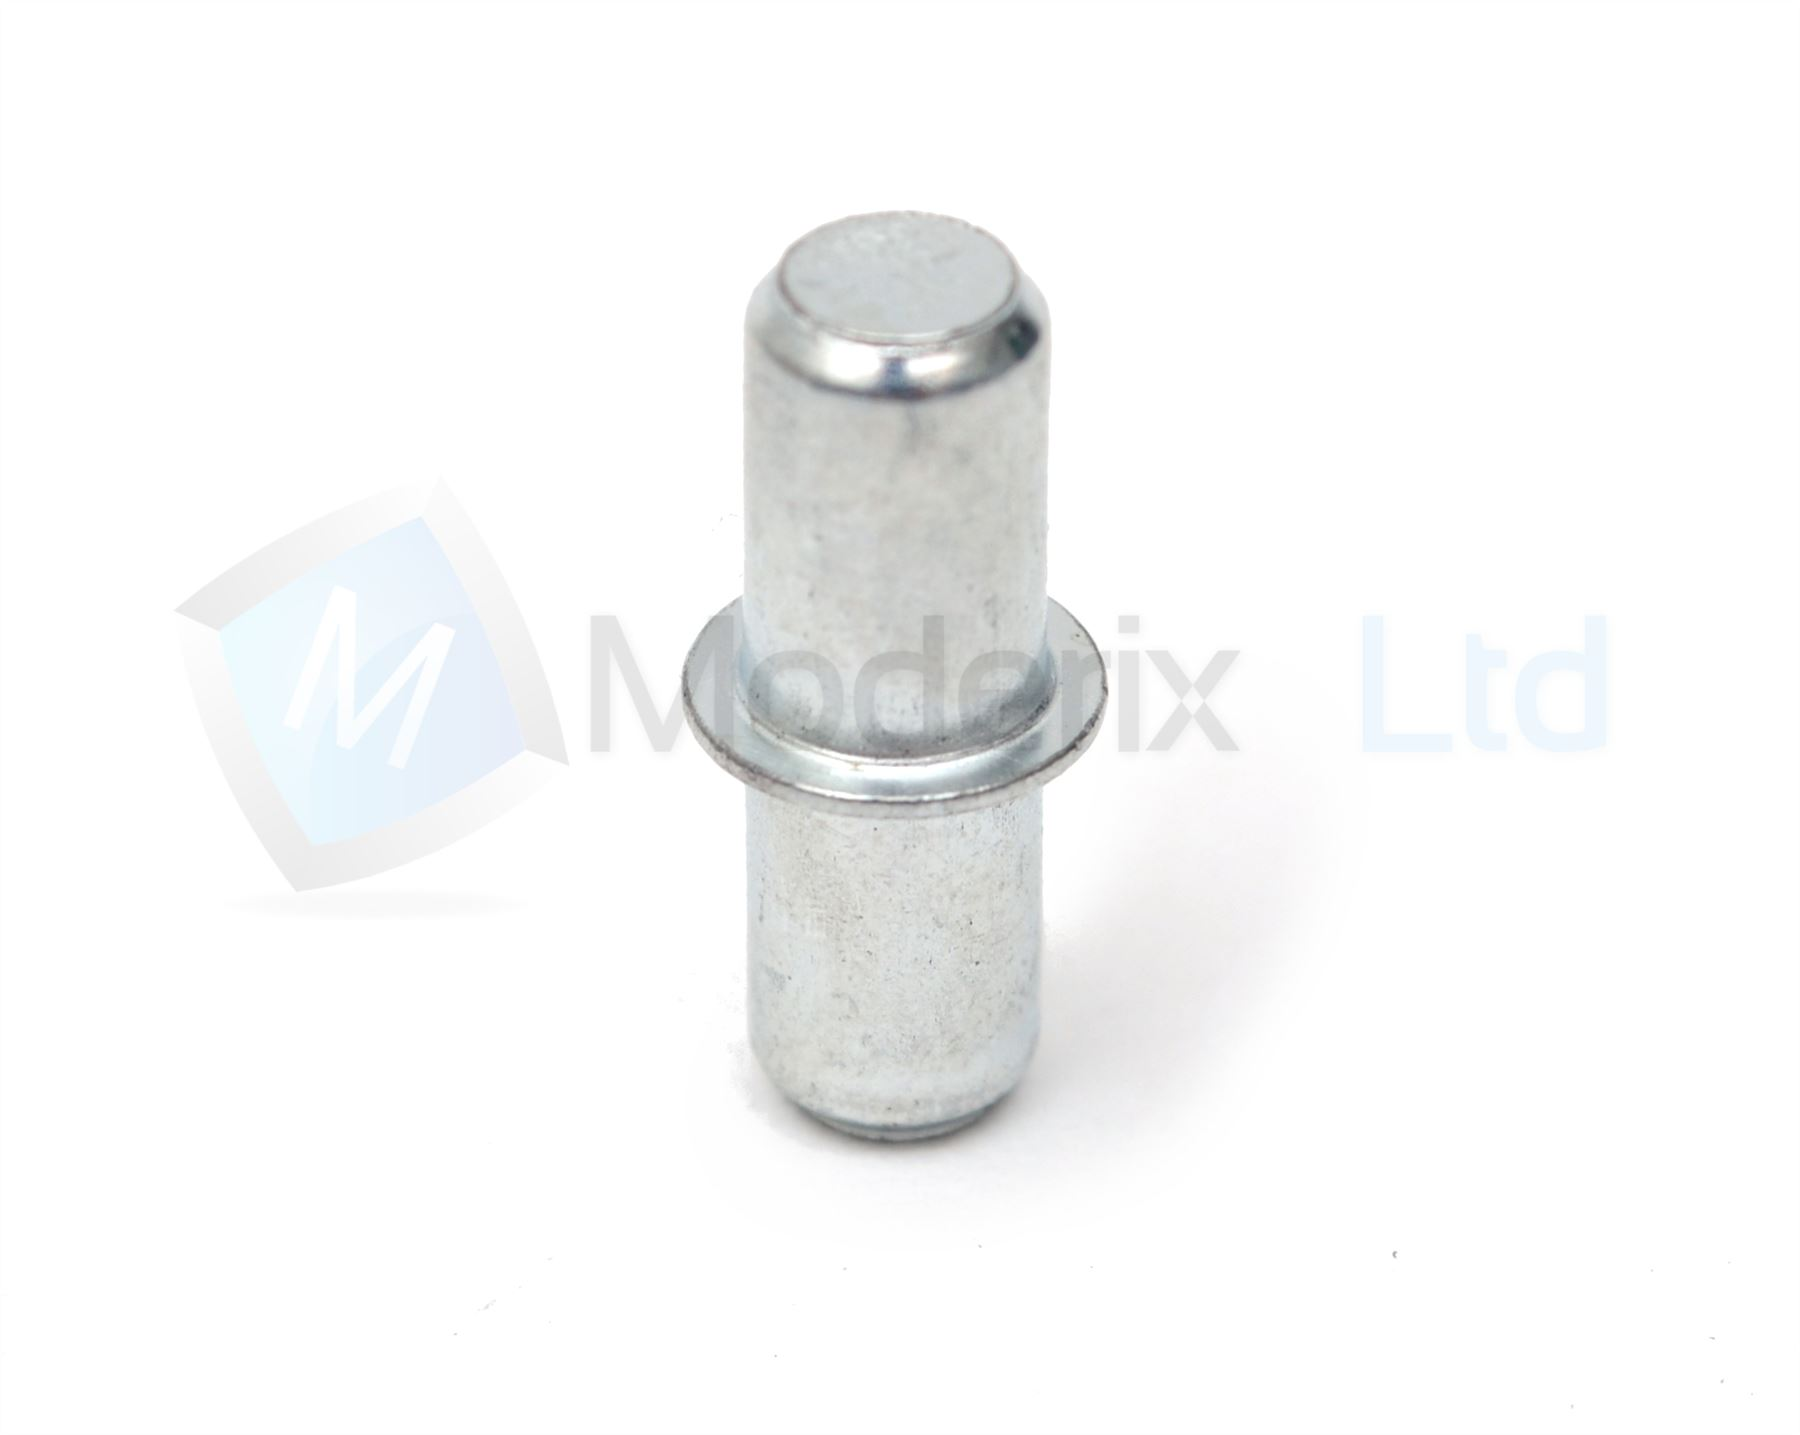 Shelf Pins Glass Support Pins Studs Metal Peg Packs 4